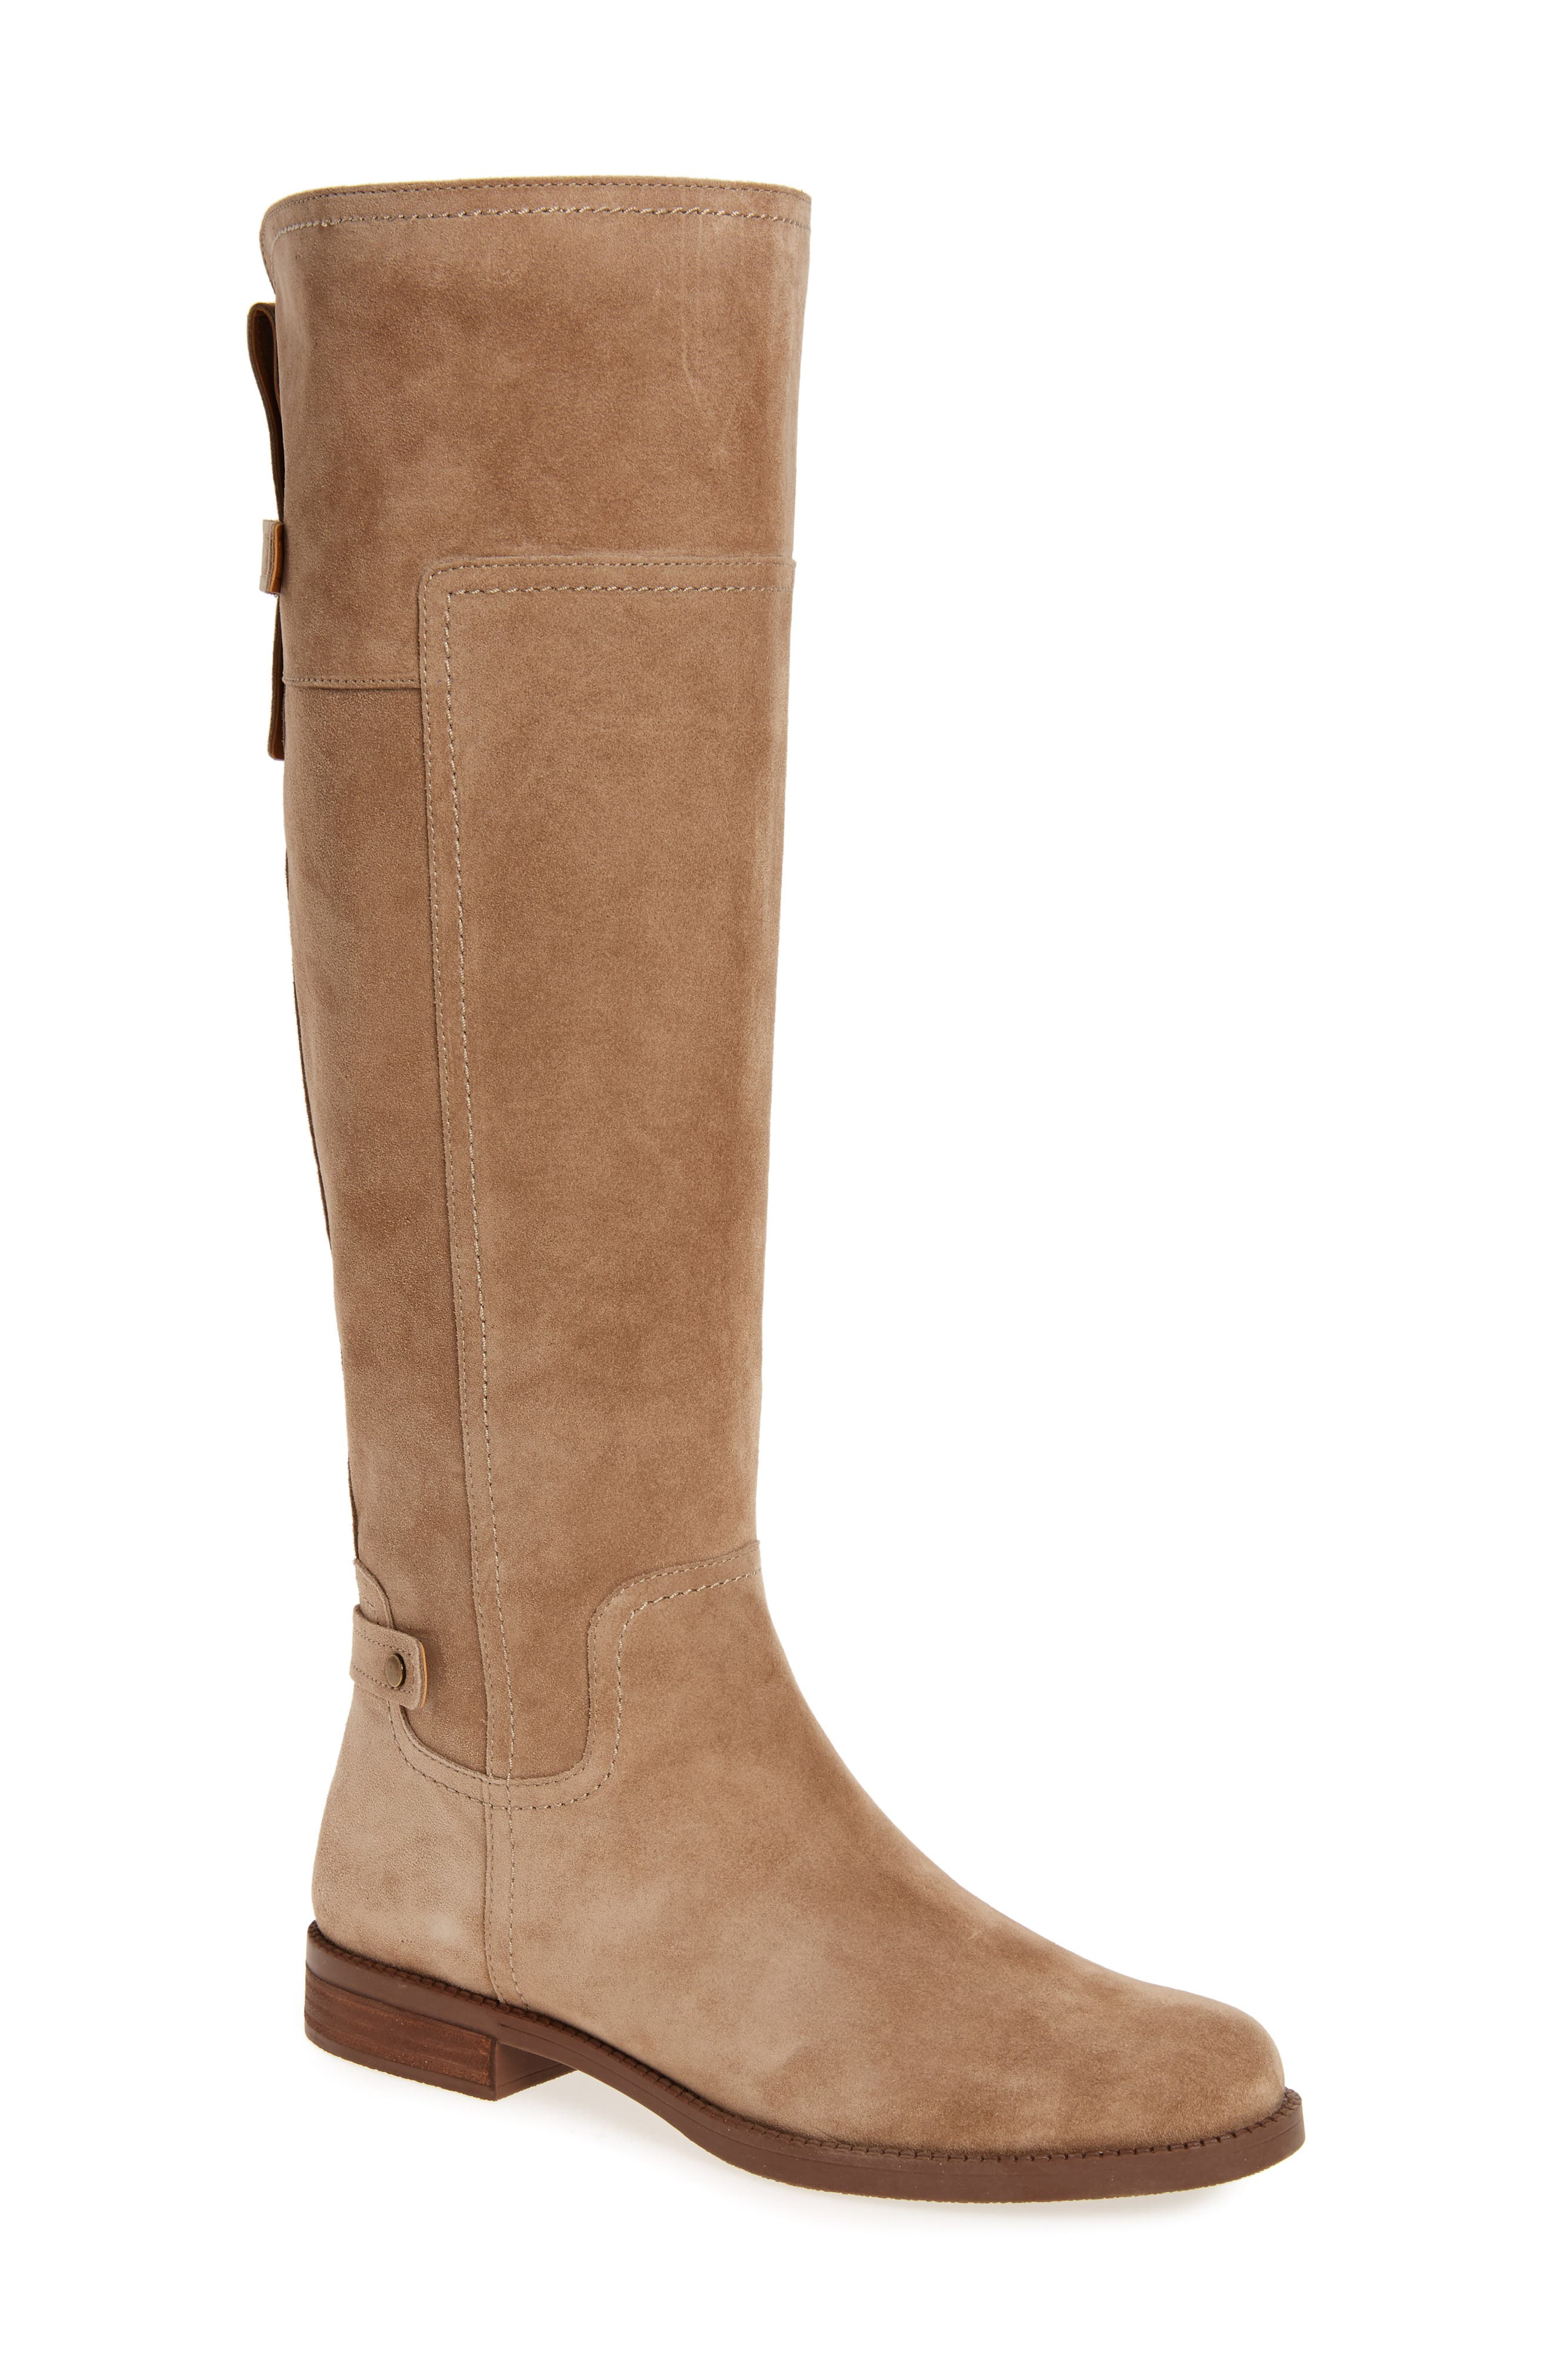 Alternate Image 1 Selected - SARTO by Franco Sarto Coley Boot (Women) (Regular & Wide Calf)